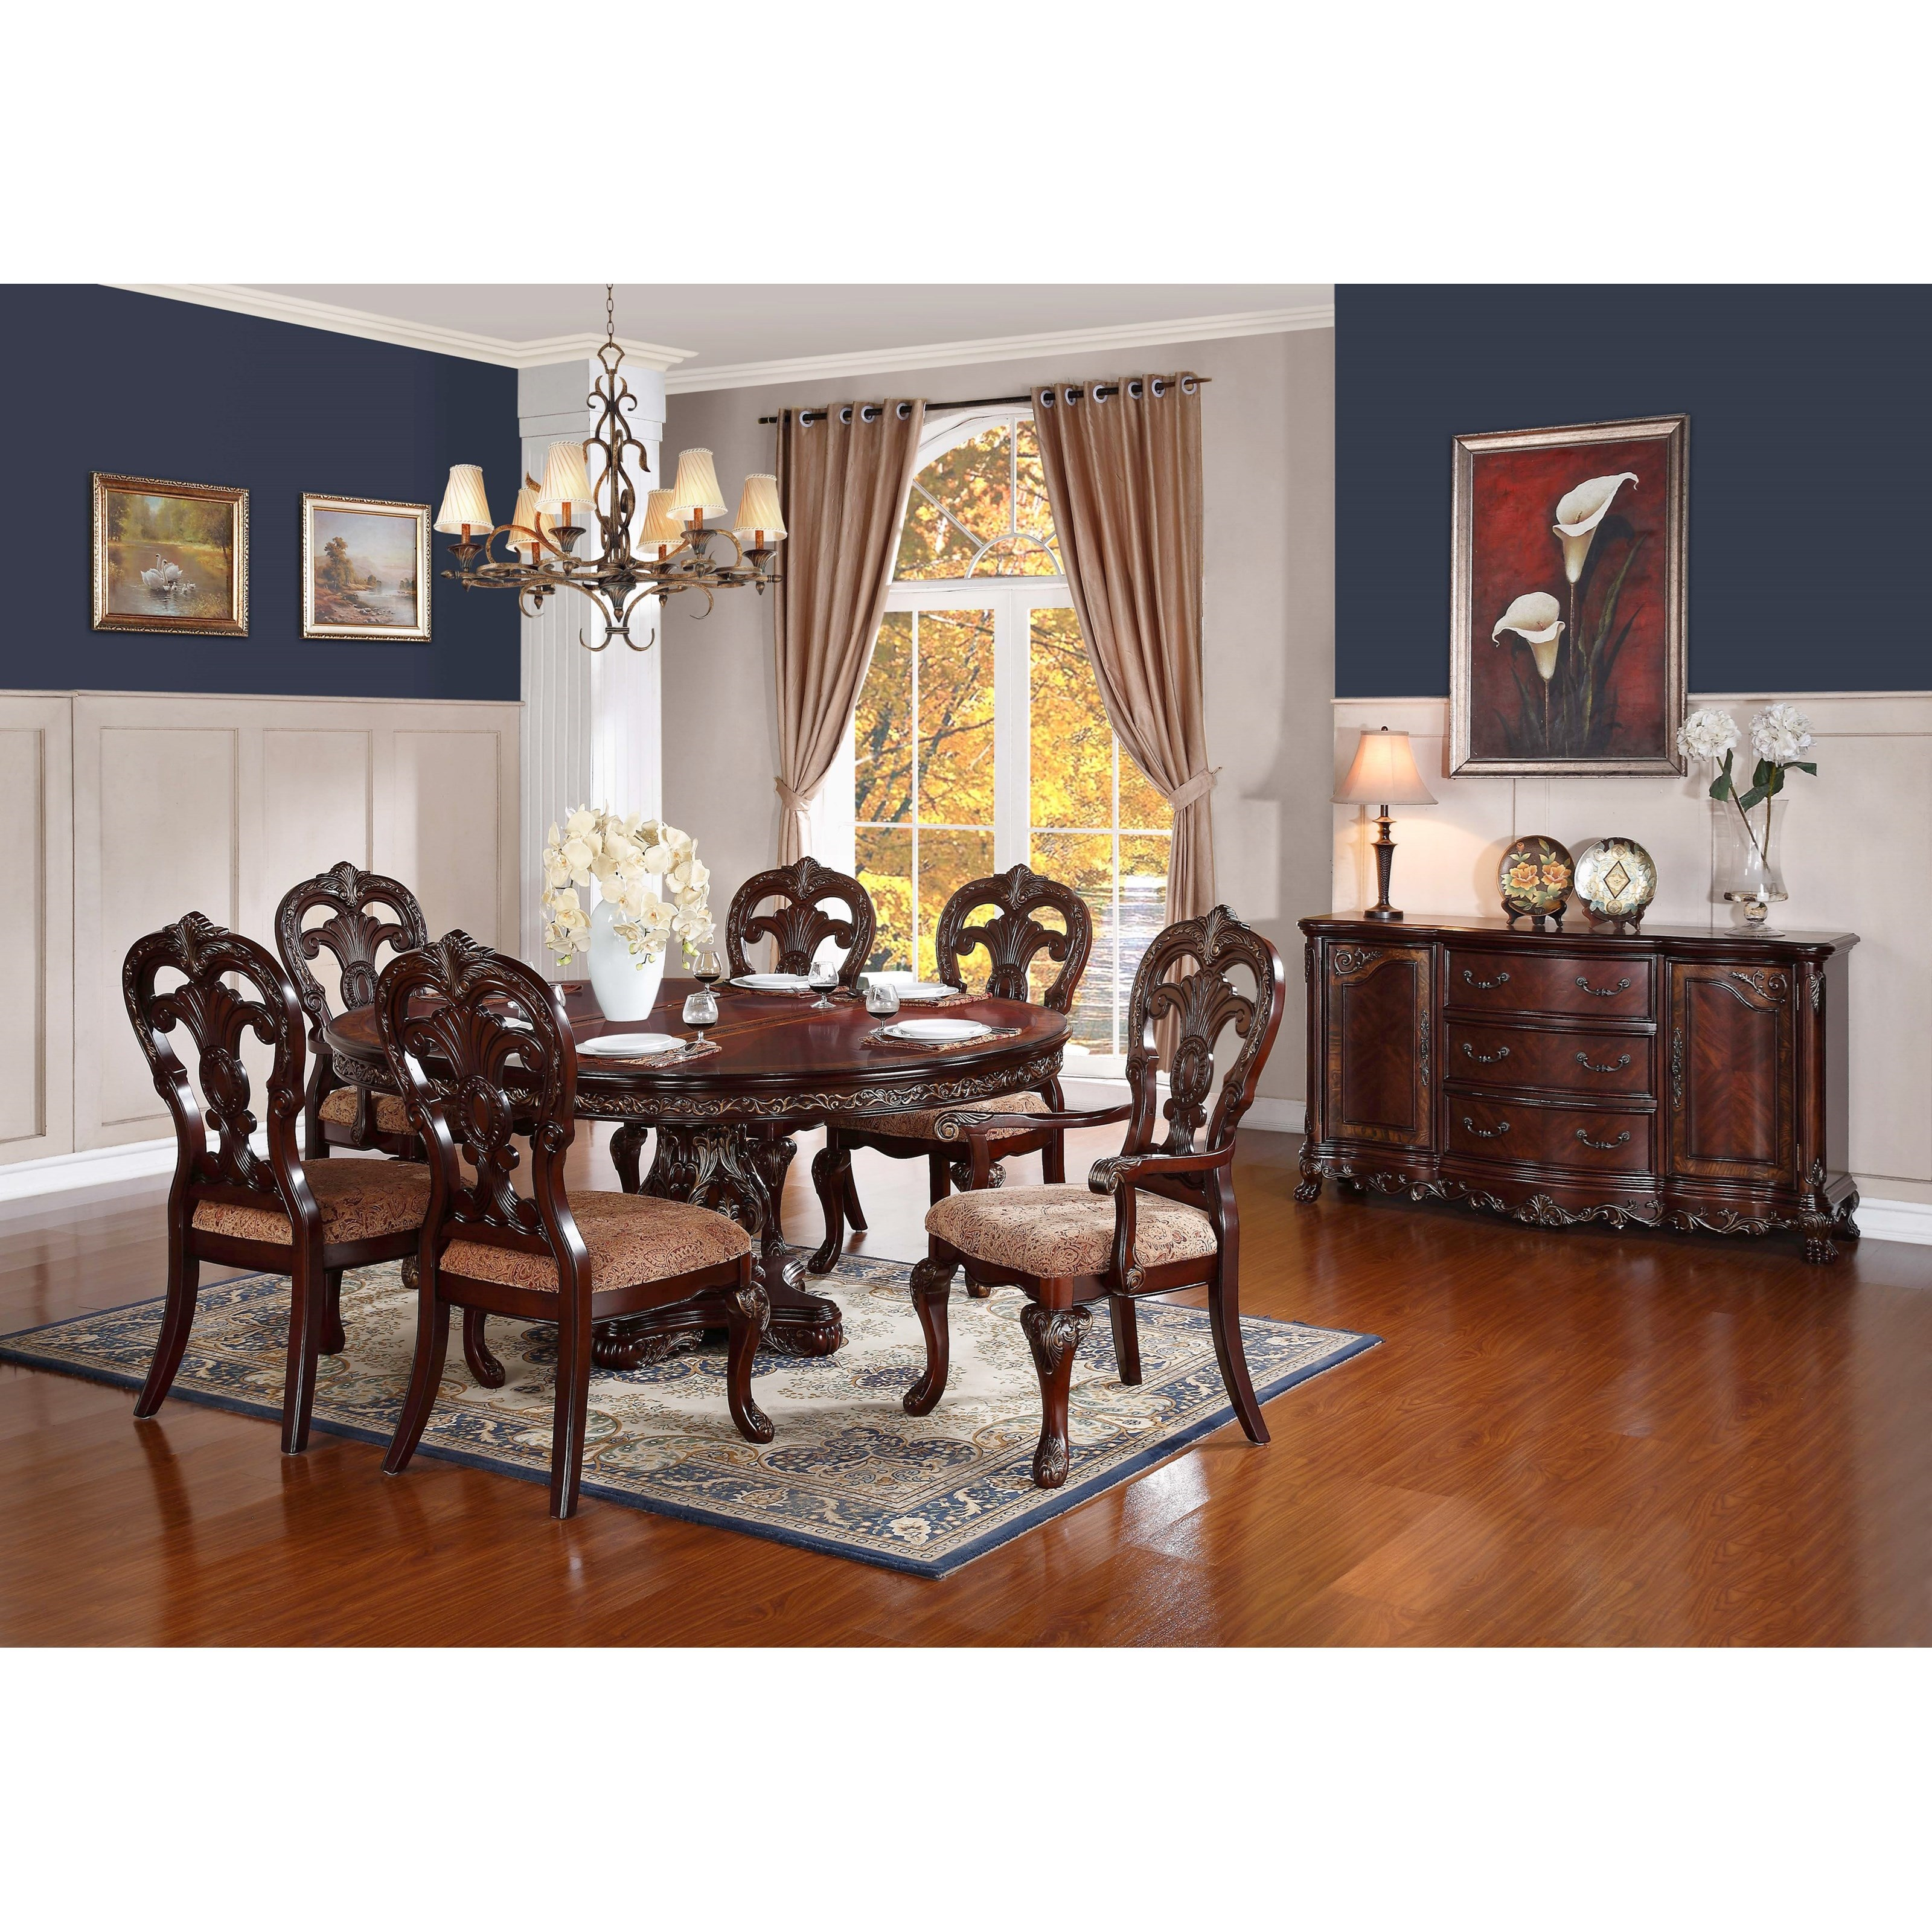 Homelegance Deryn Park Traditional Round Dining Table With